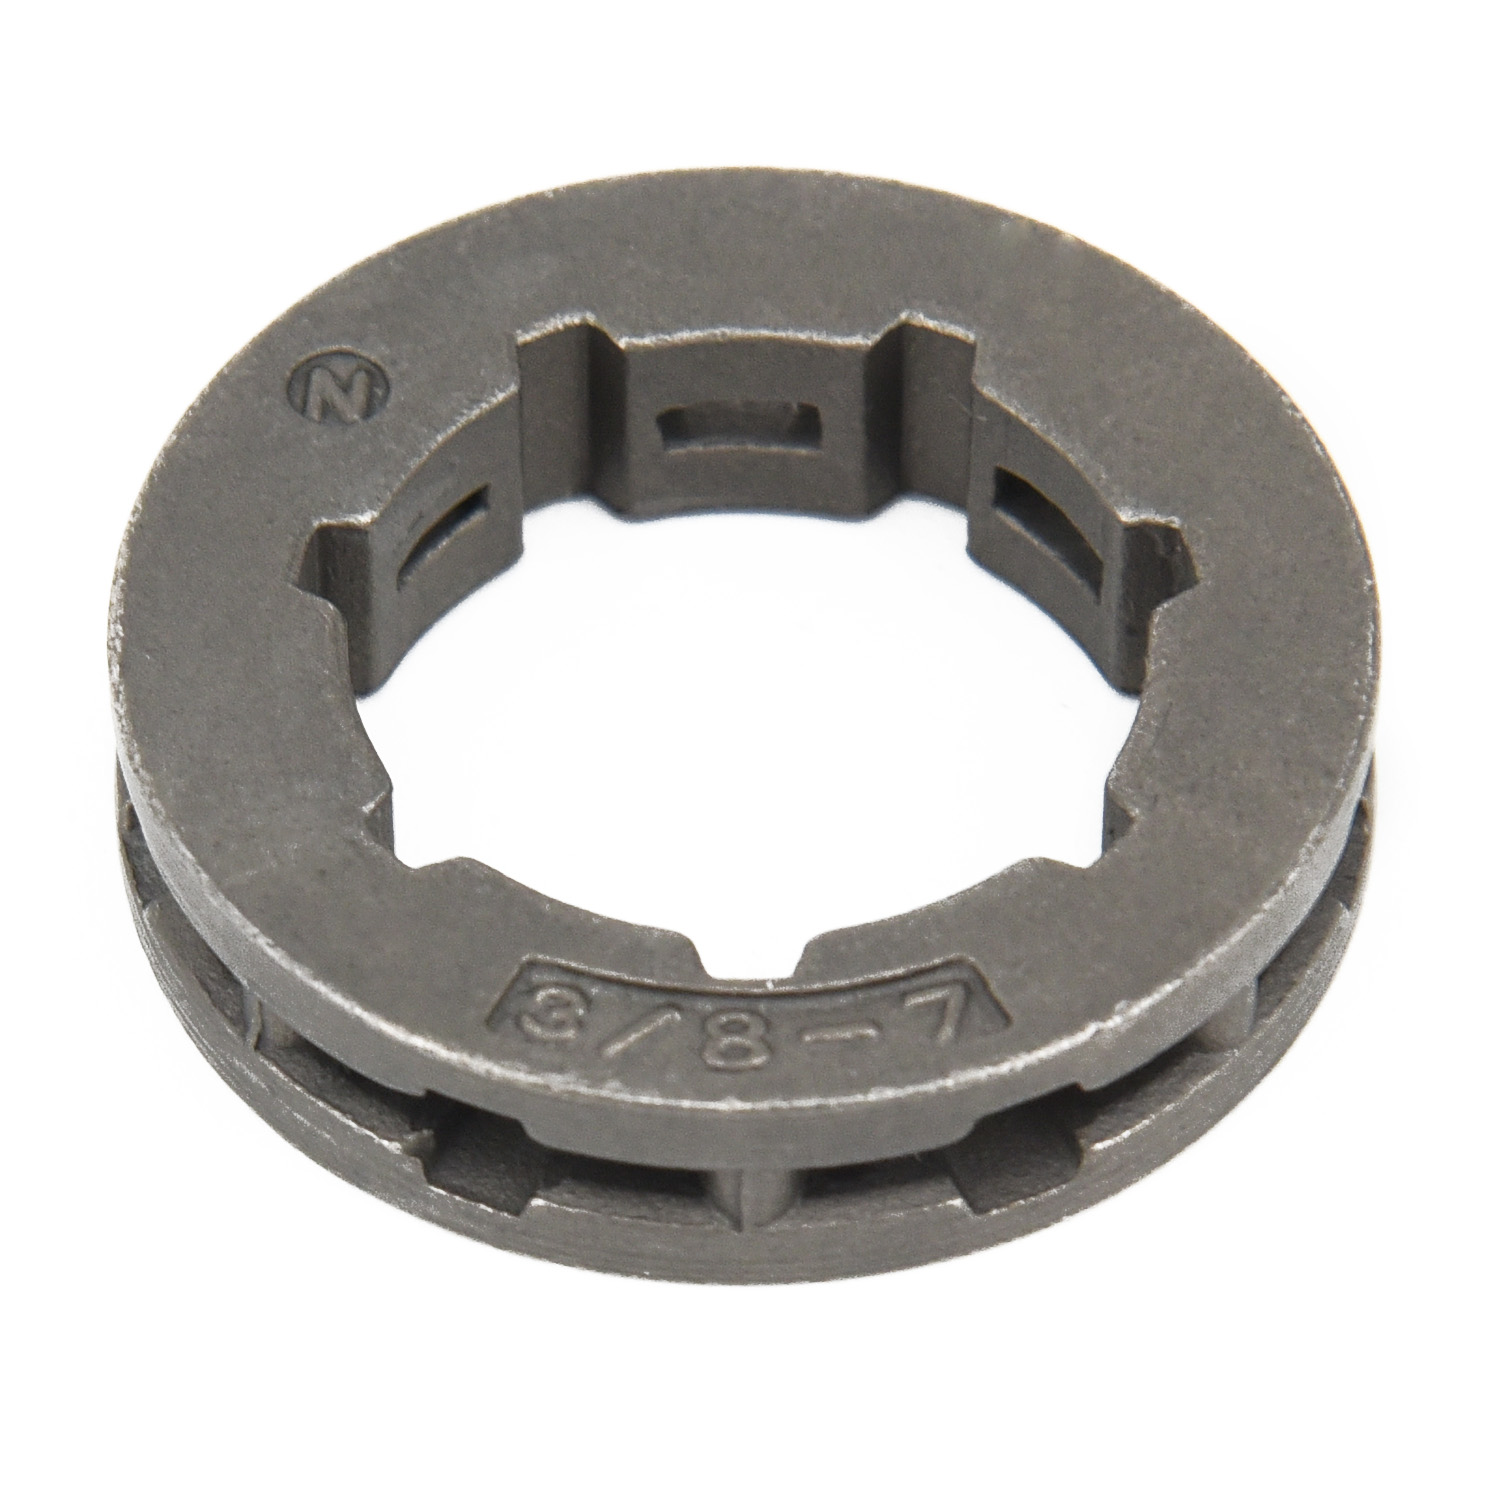 New 3/8-7T Sprocket Rim Fits For Stihl MS720 064 066 MS640 <font><b>MS660</b></font> 084 088 MS880 image